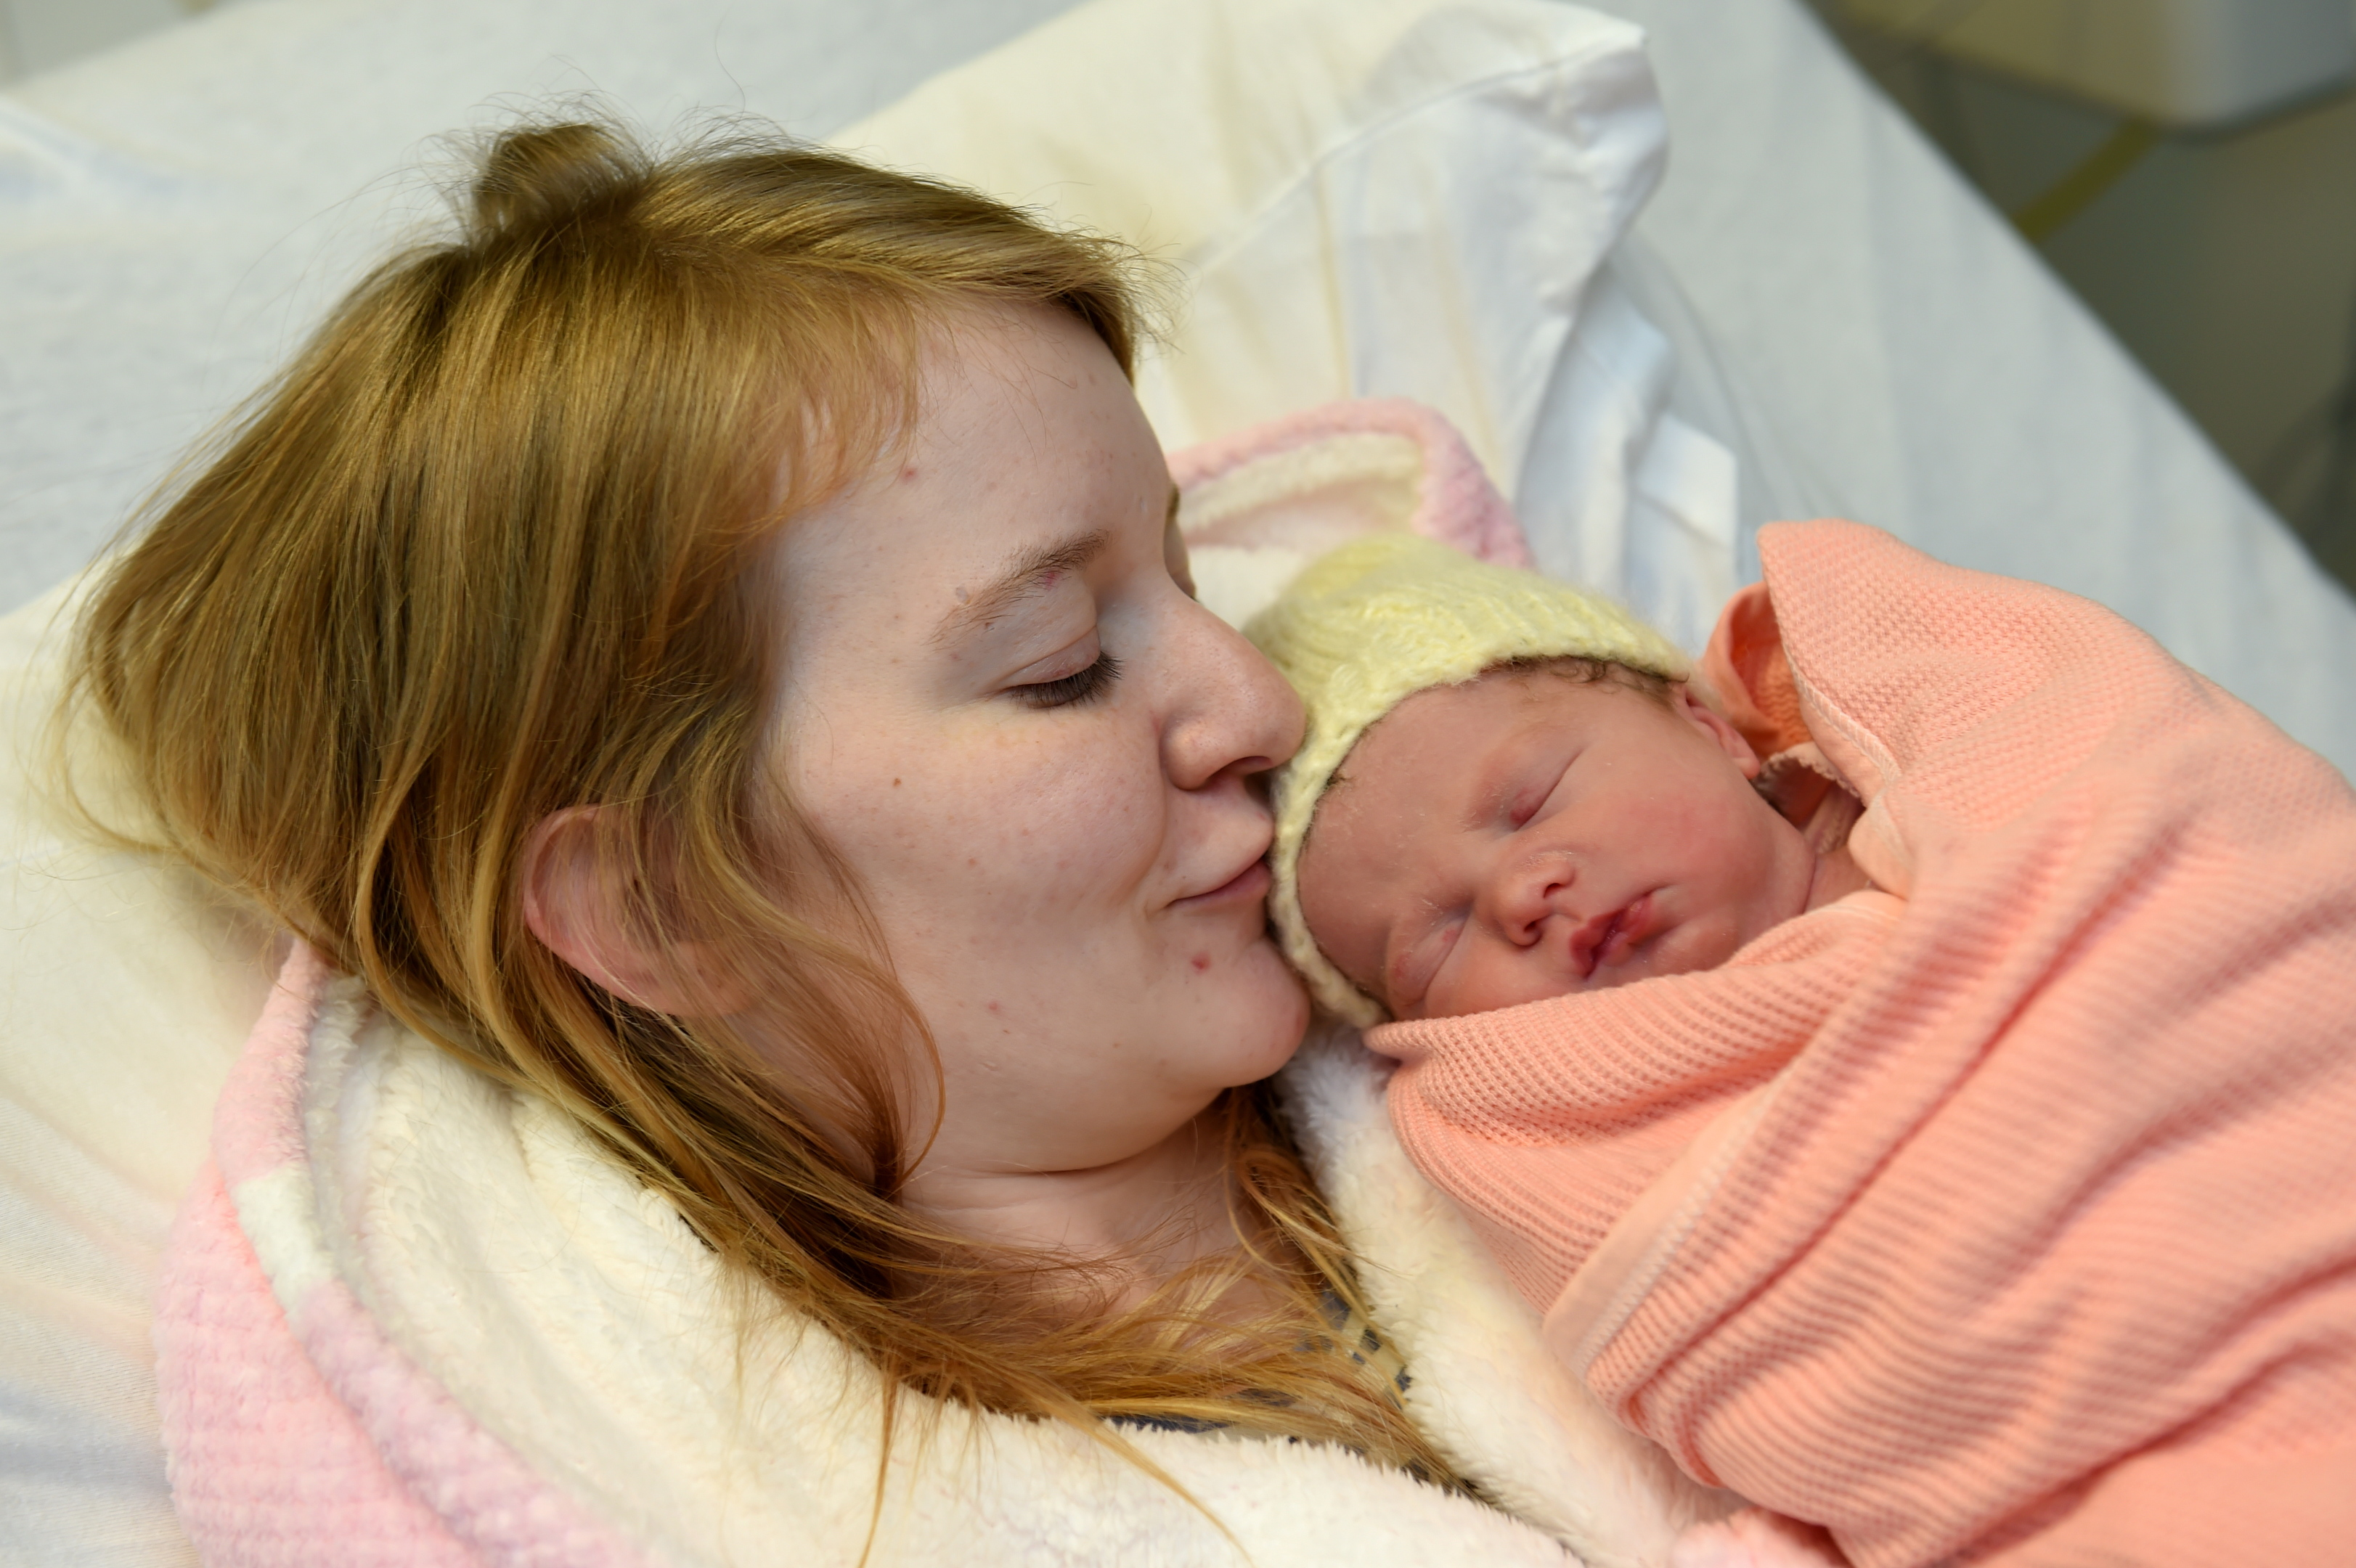 Nicolle Clark and her un-named baby girl.